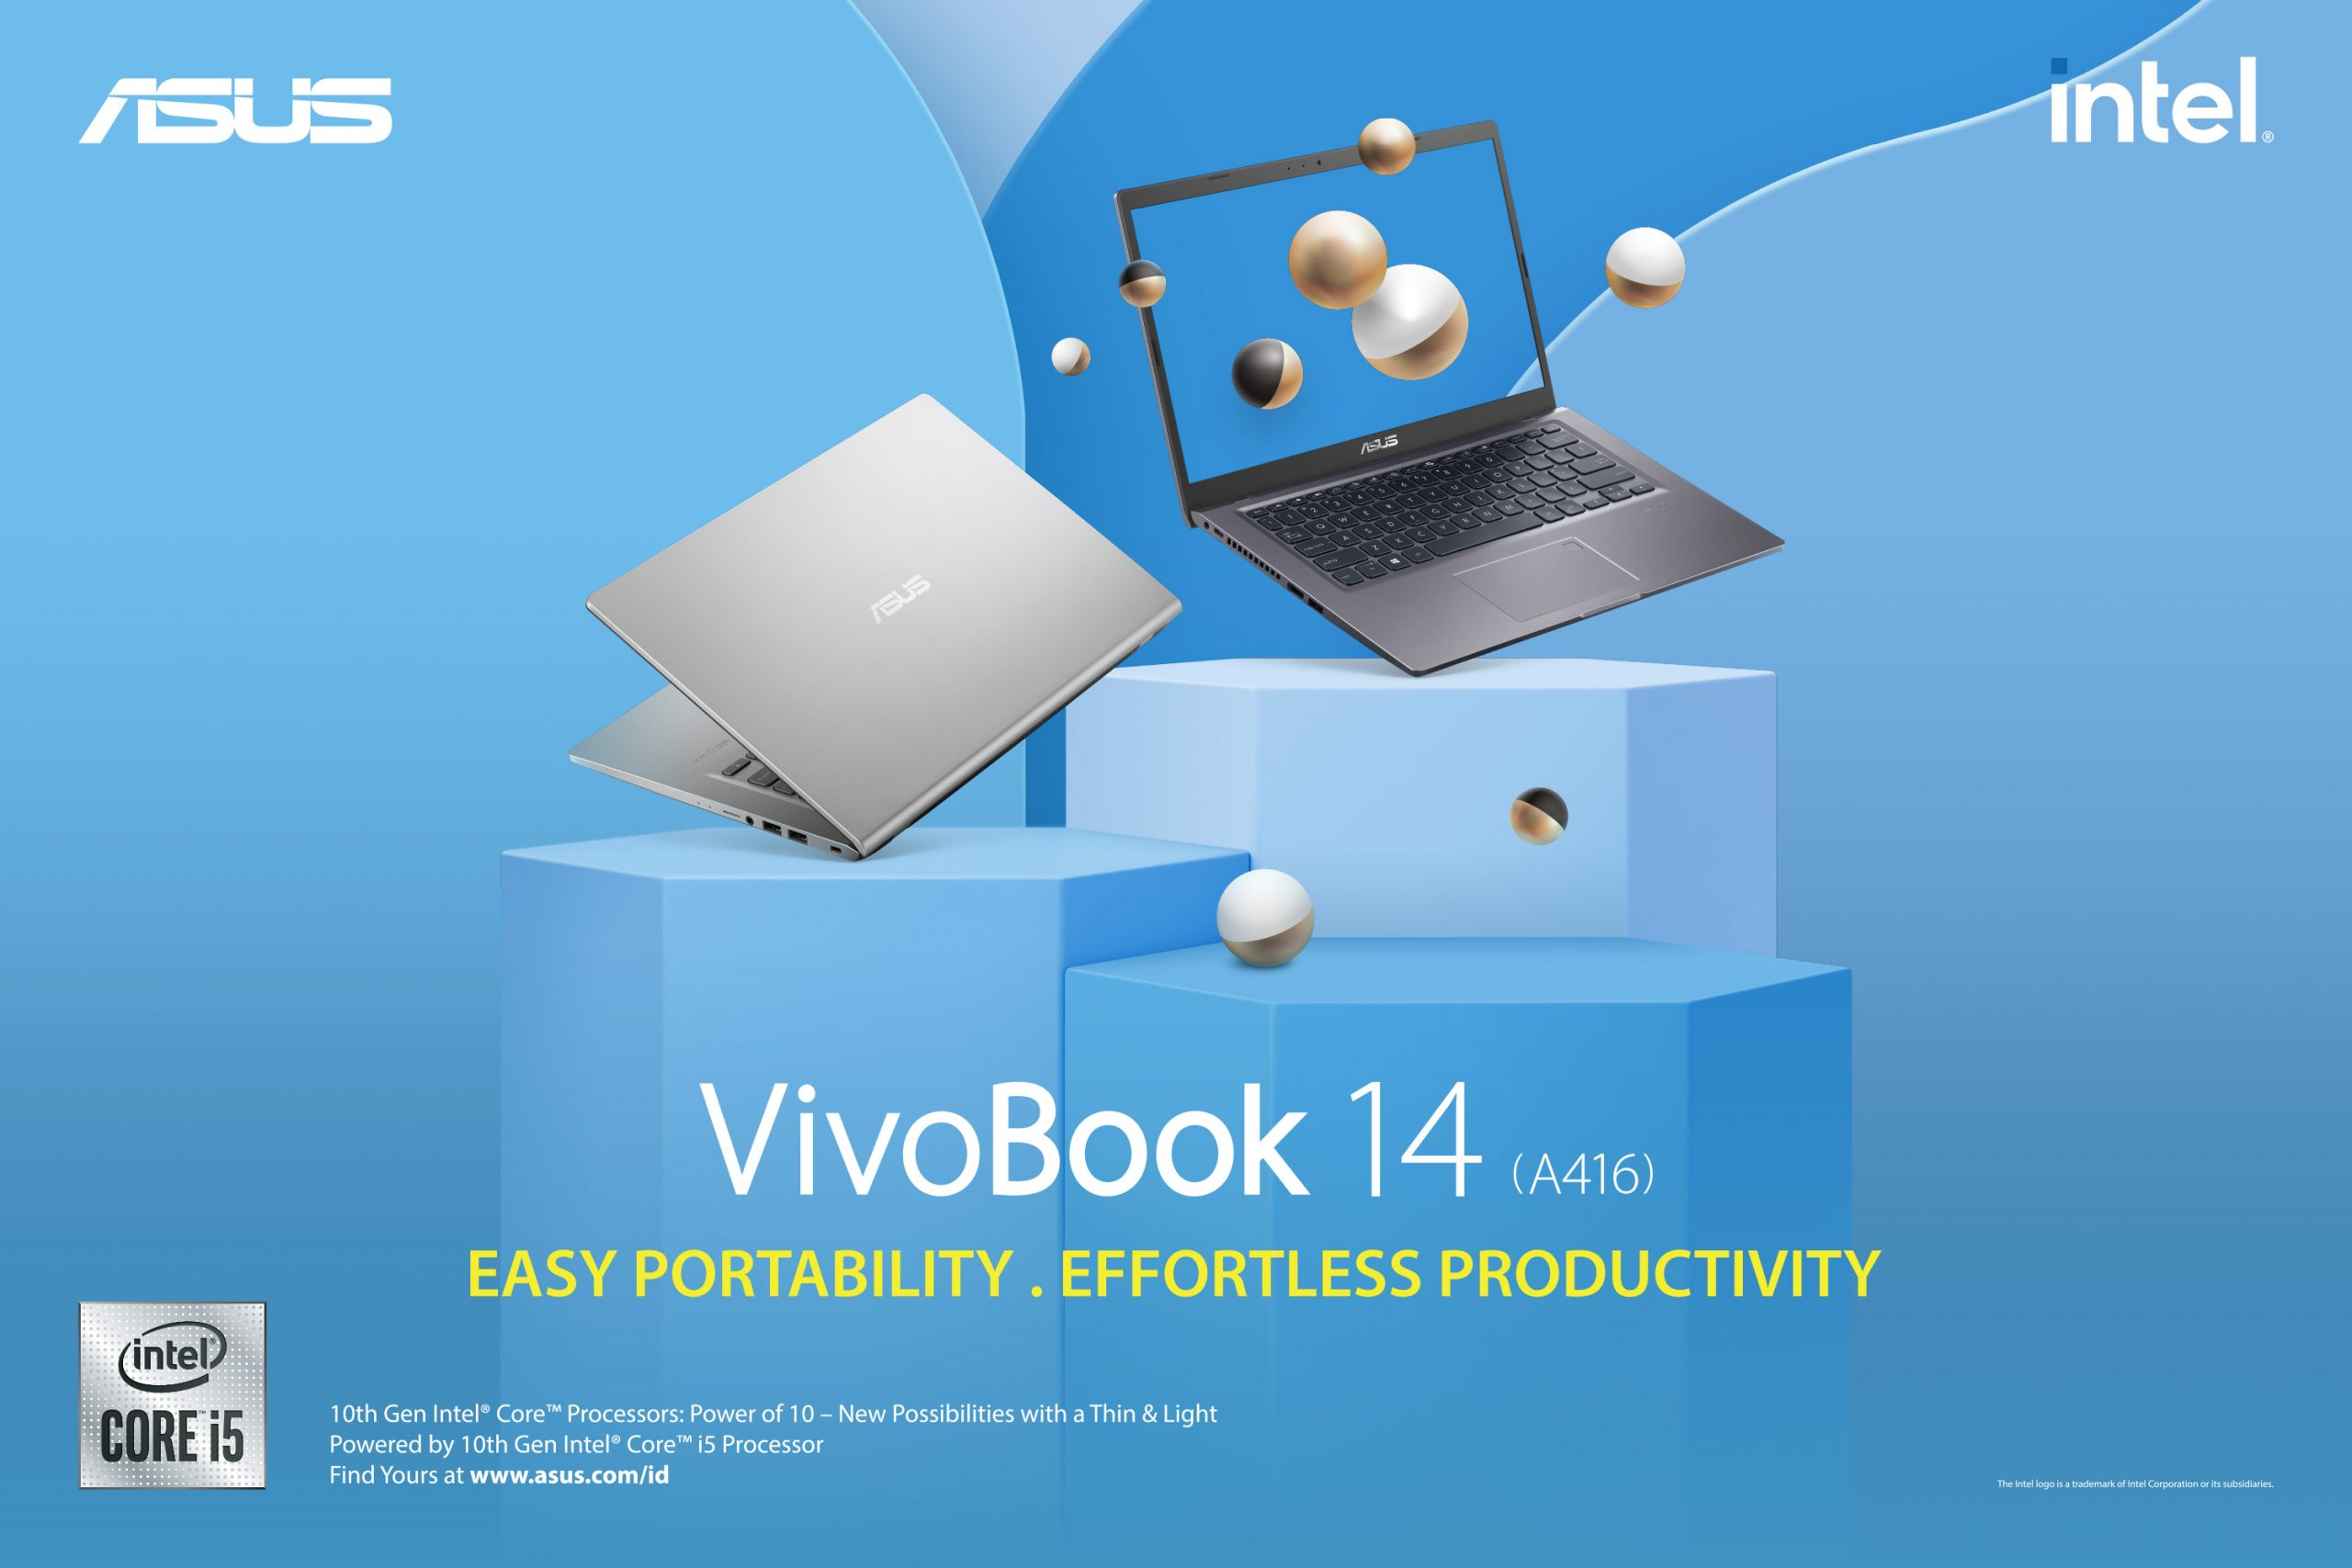 Intel Core 10th Gen - ASUS VivoBook 14 A416 - Easy Portability, Effortless Productivity